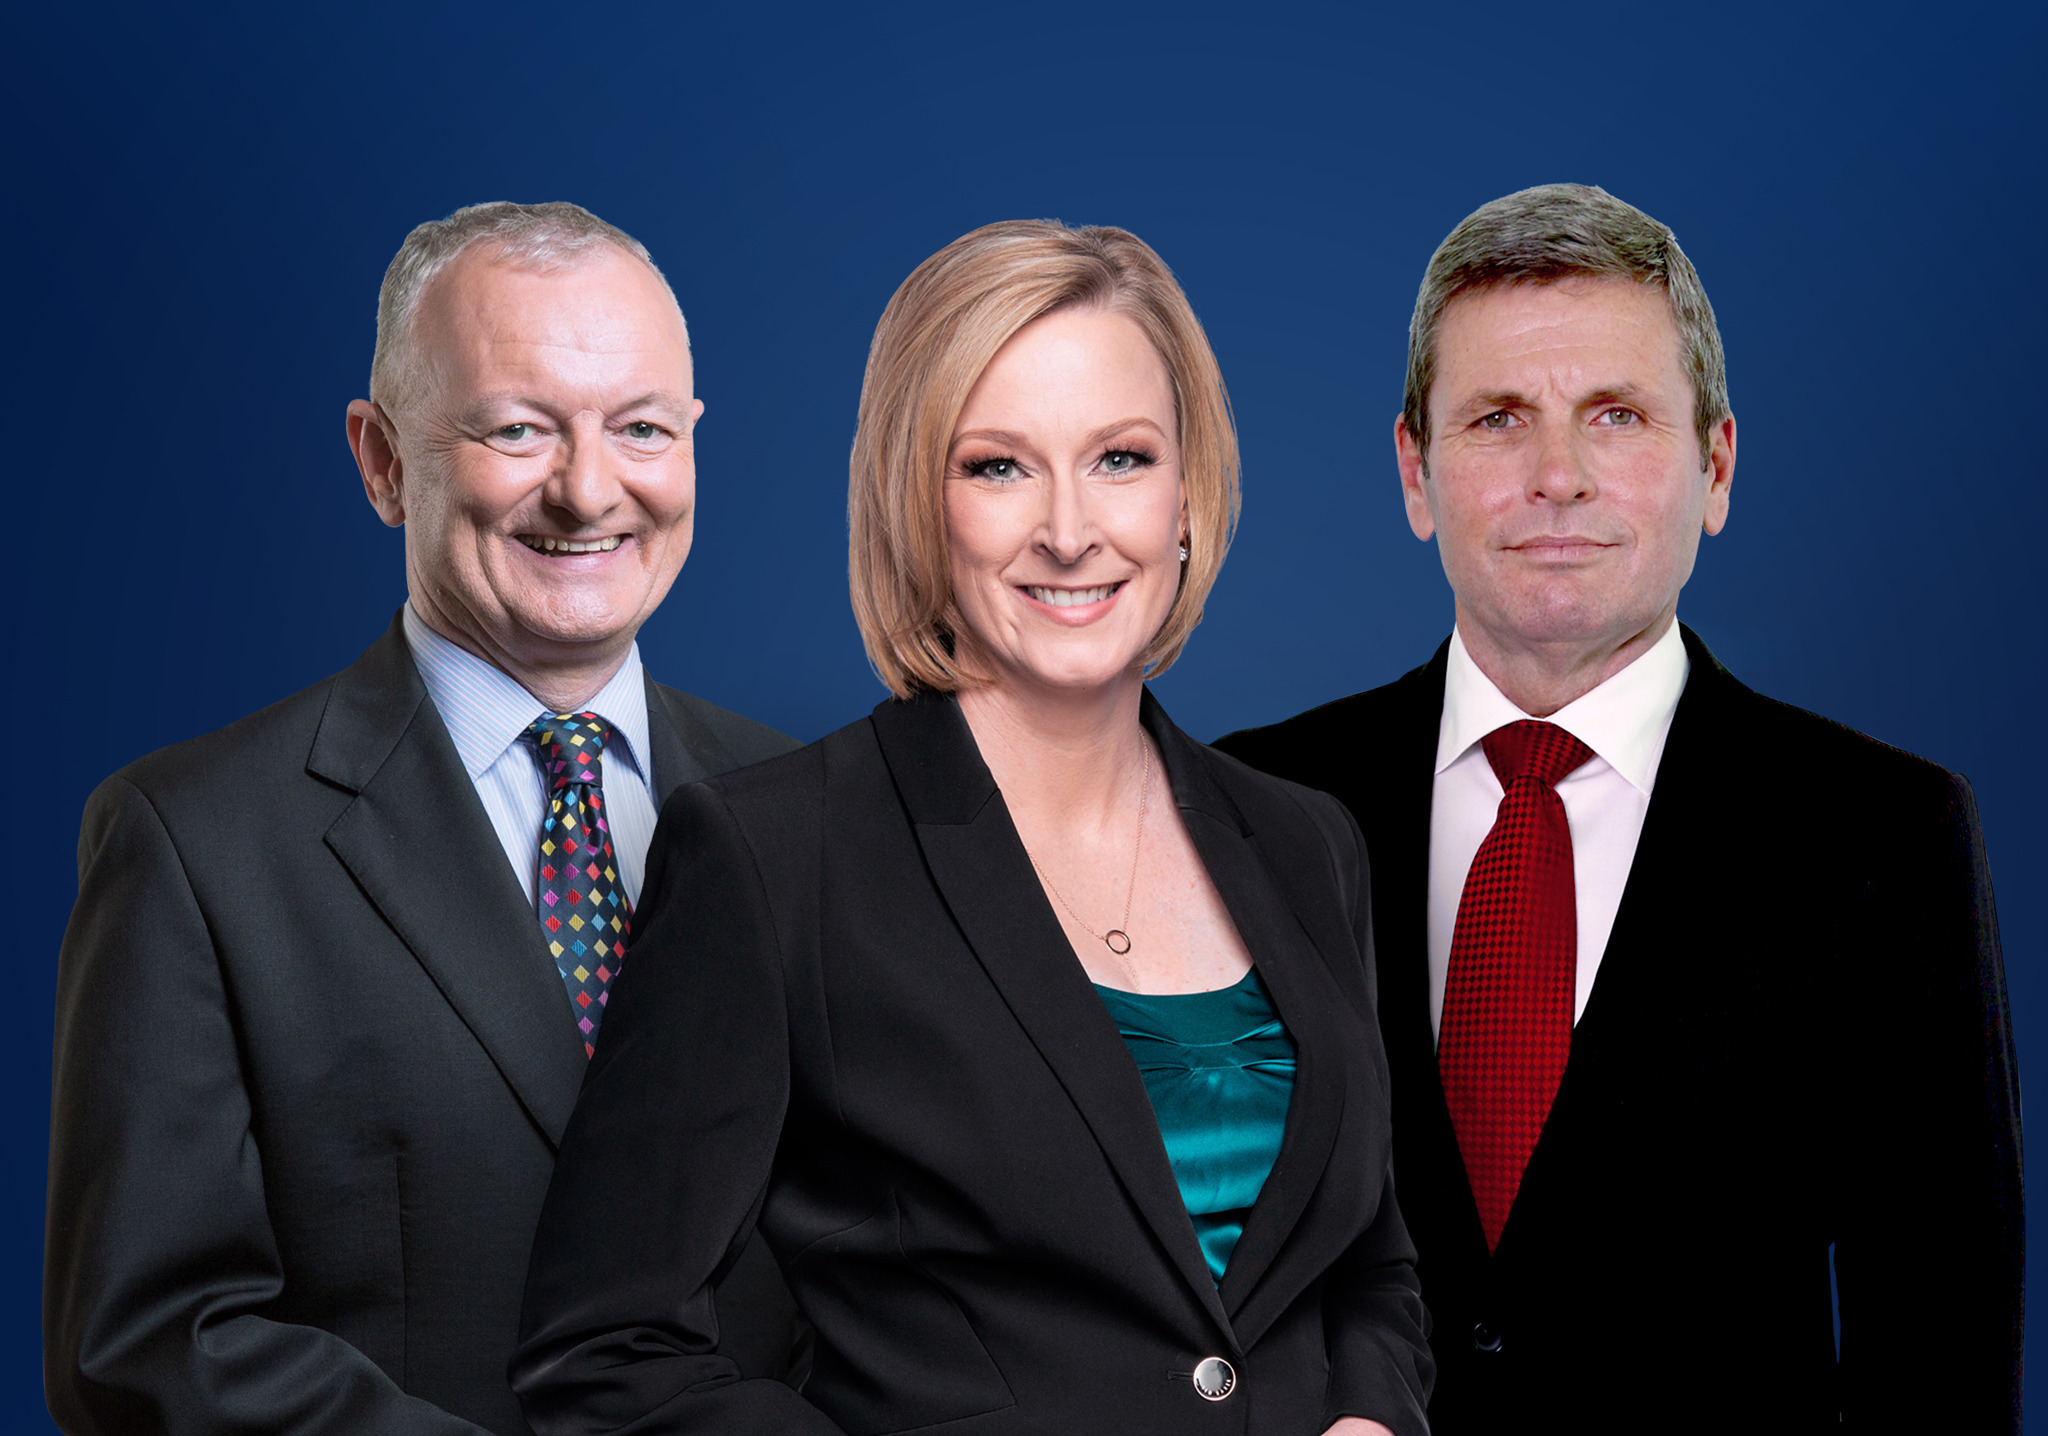 Australians Vote 1 for ABC's Federal Election Coverage